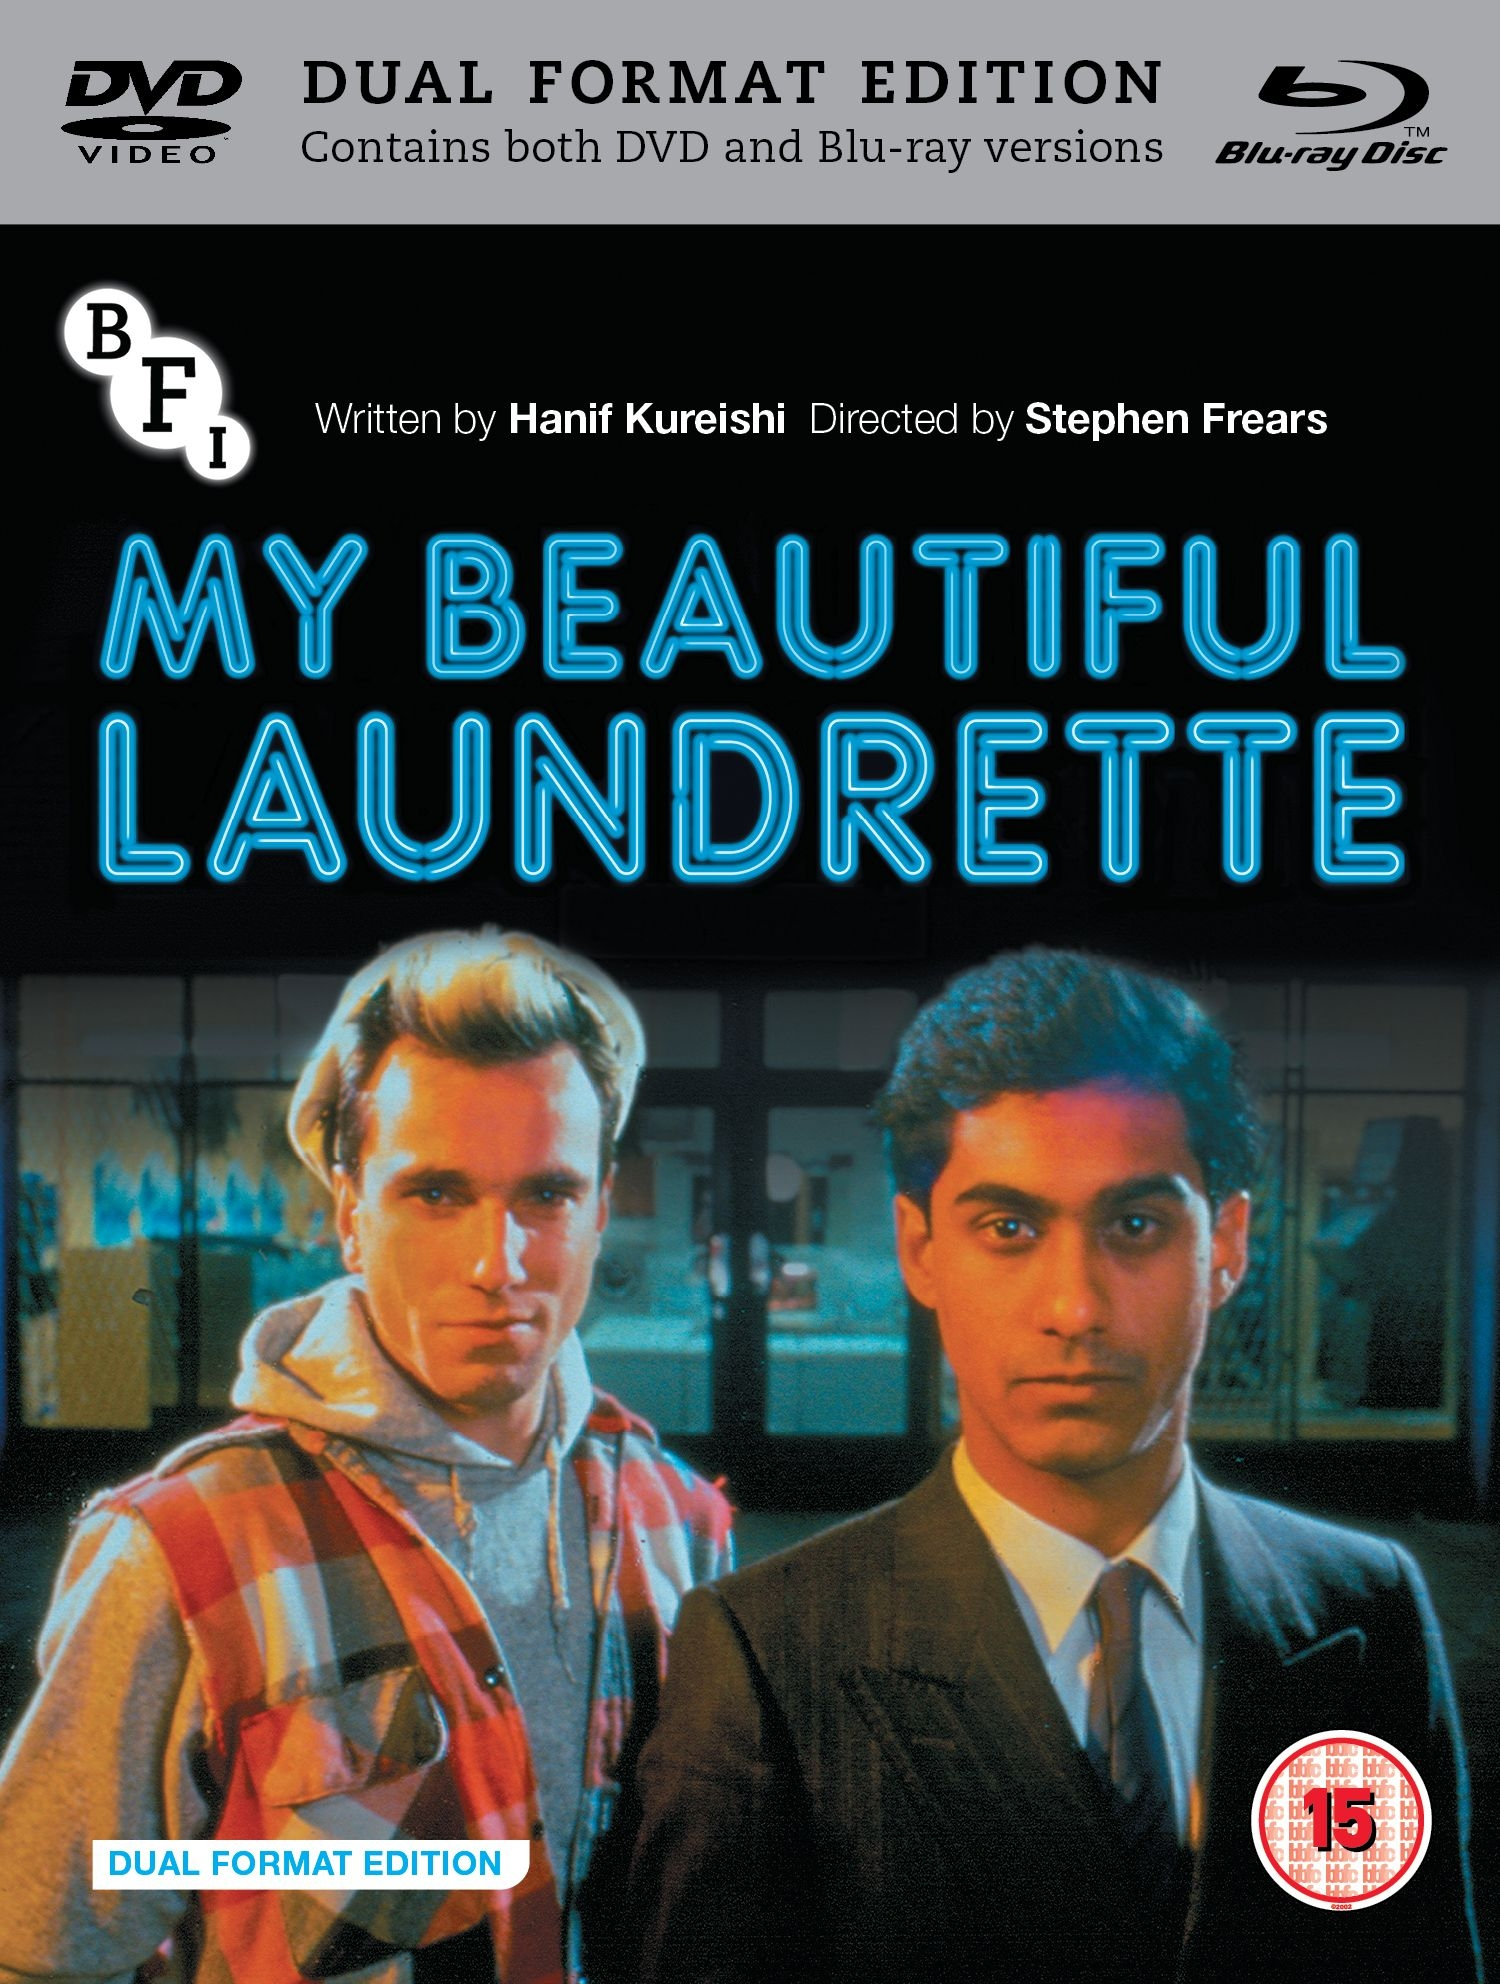 Buy My Beautiful Laundrette (Dual Format Edition)